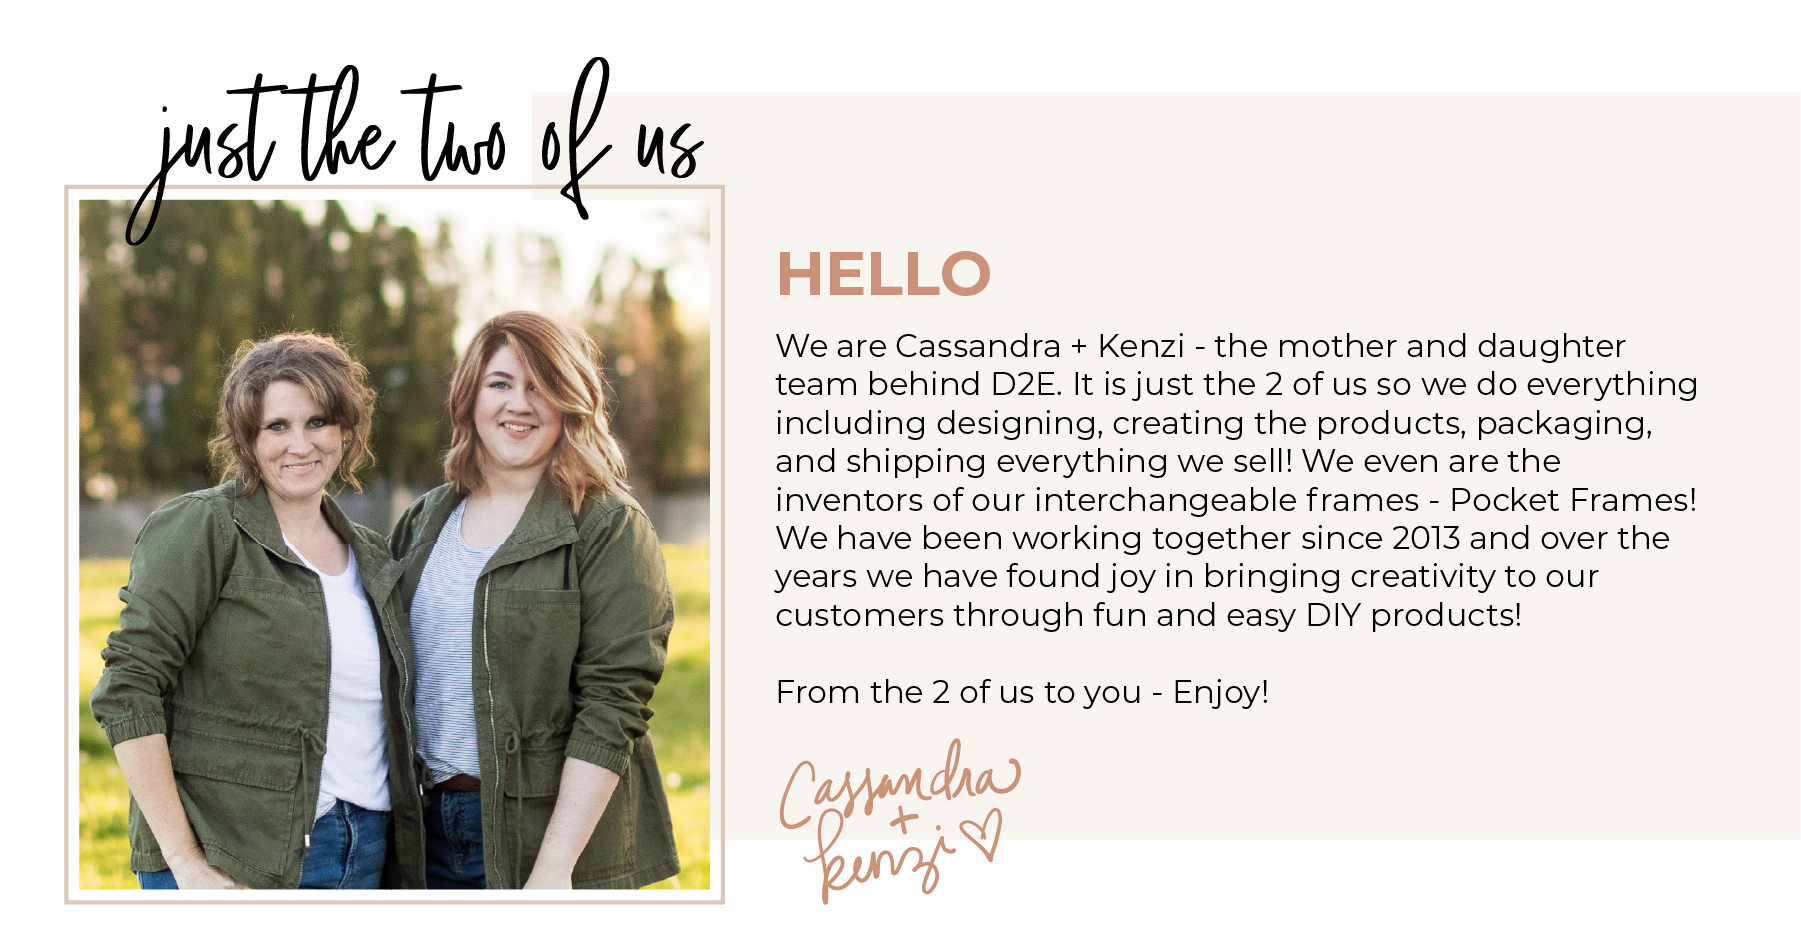 We are Cassandra + Kenzi - the mother and daughter team behind D2E. Just the 2 of us handle everything from designing, to creating the products, to packaging and shipping everything we sell! We also worked together to invent Pocket Frames - our interchangeable signs! We have been working together since 2013 and over the years we have found joy in bringing creativity to our customers through fun and easy DIY products! From the 2 of us to you - Enjoy!